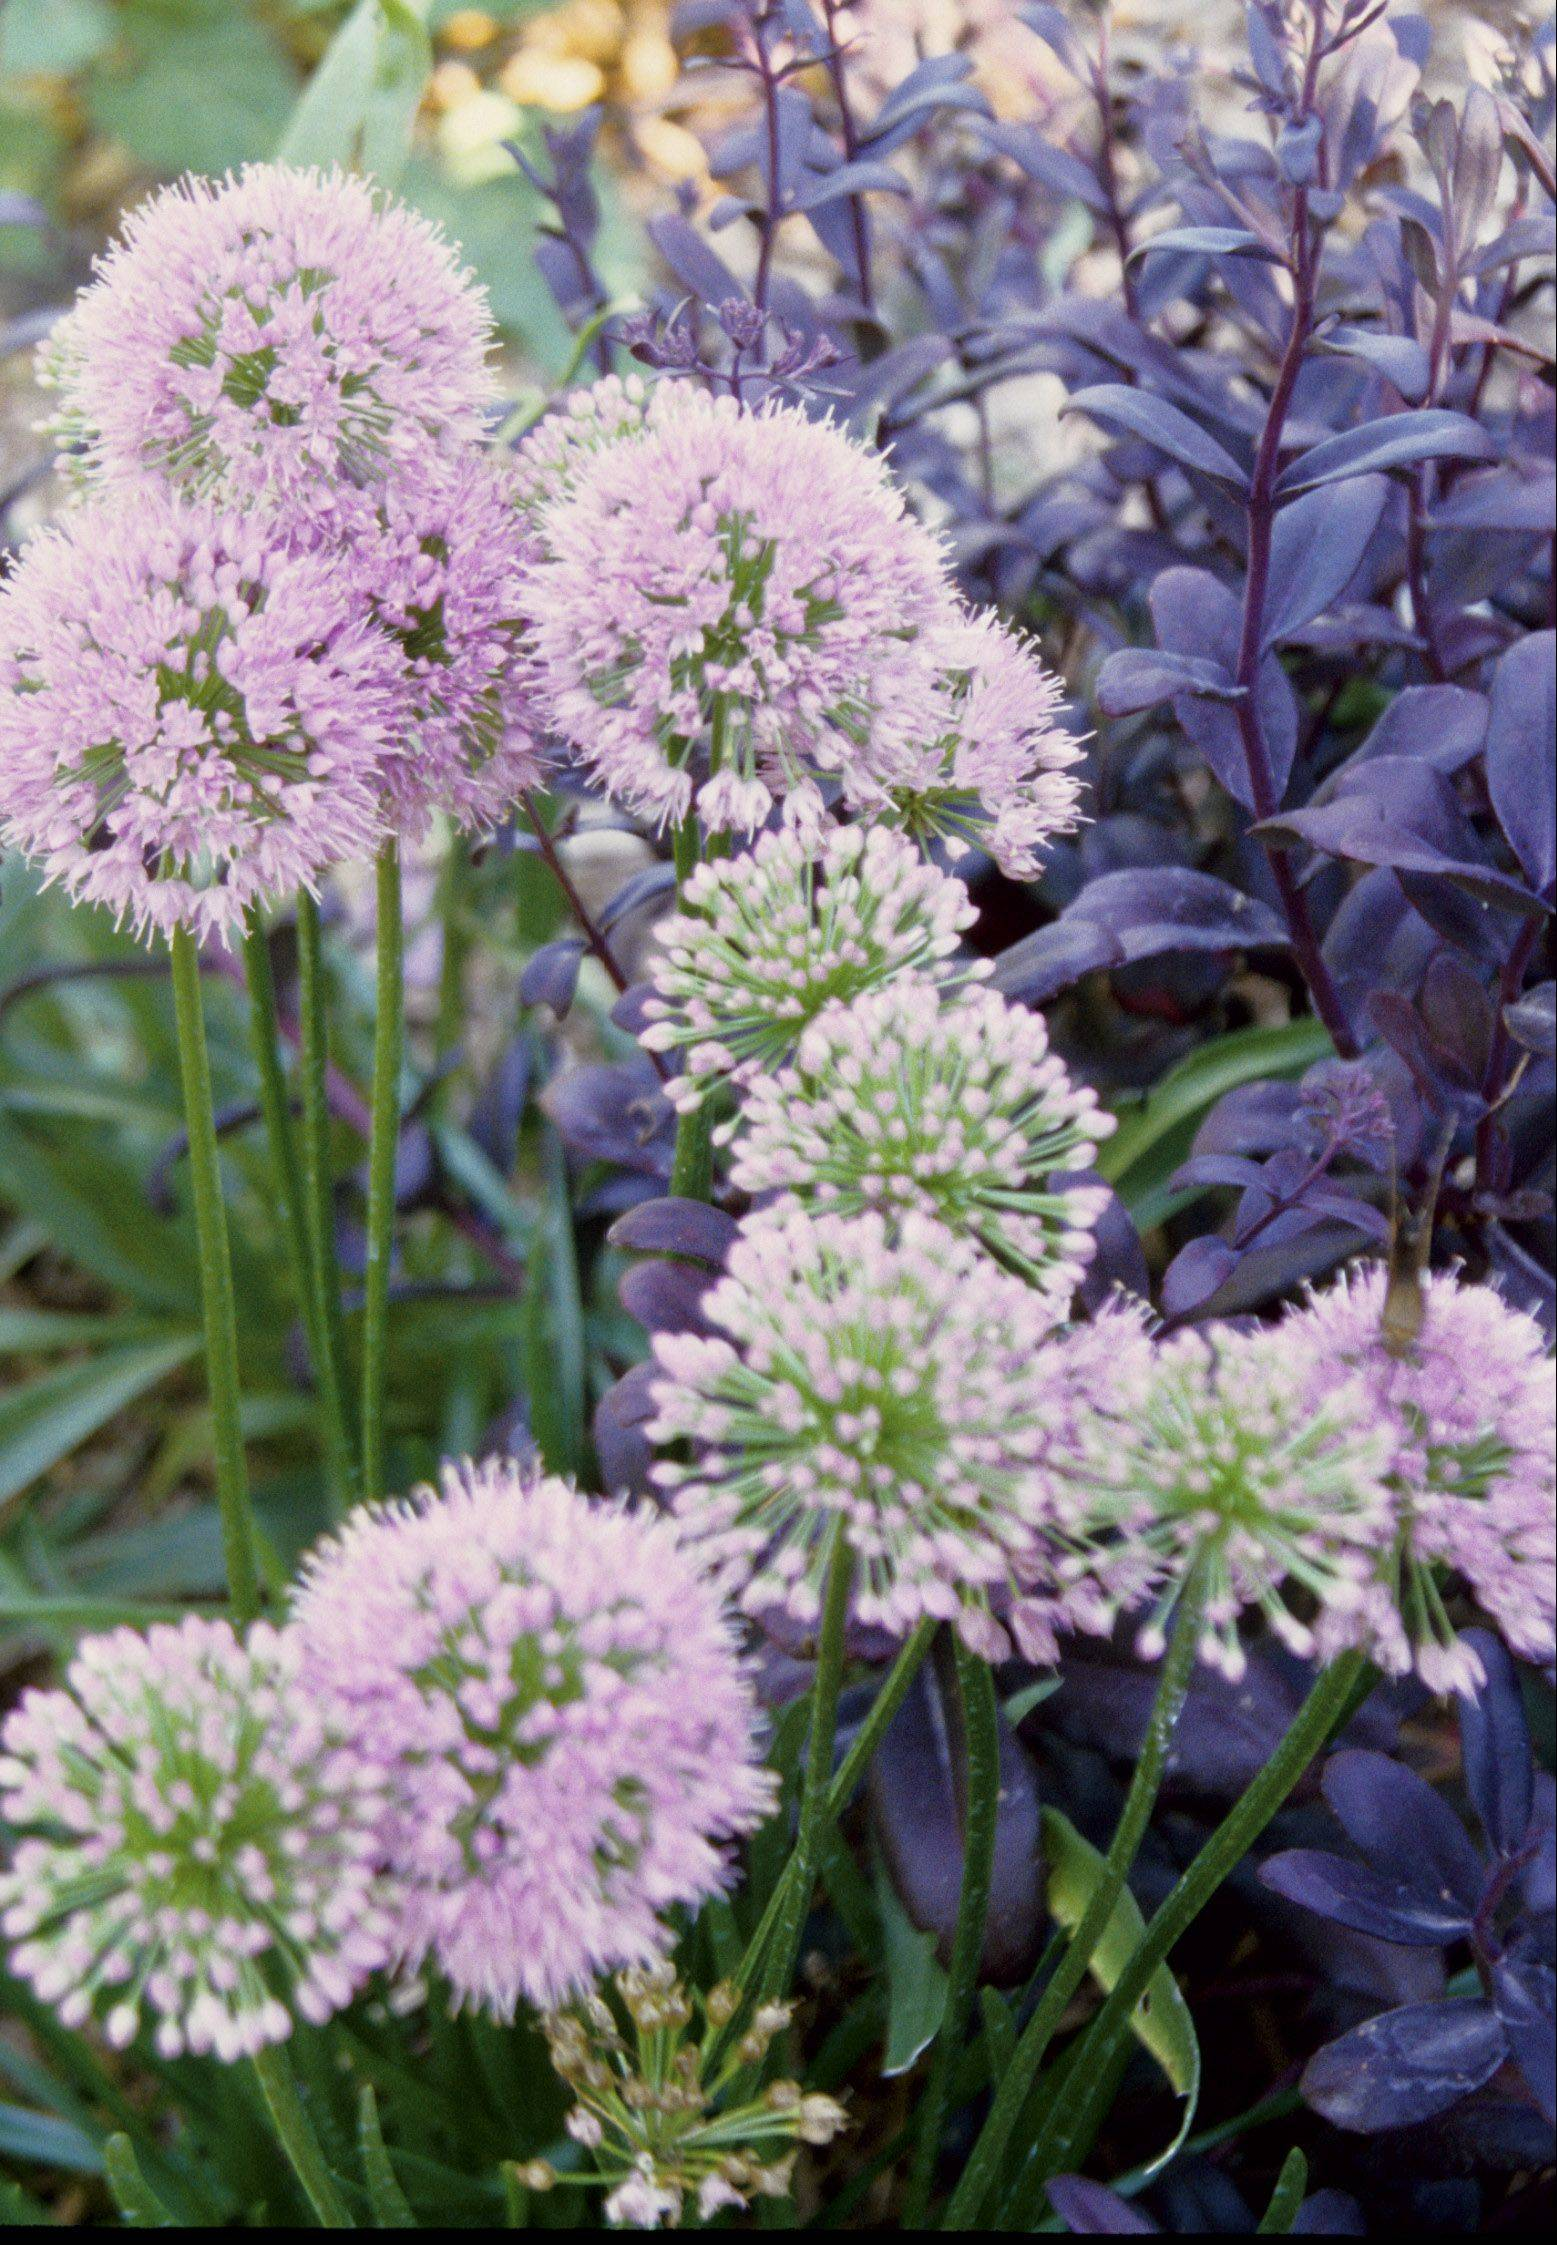 Allium Millenium is an easy-care favorite Riggenbach moved to her new, smaller garden.